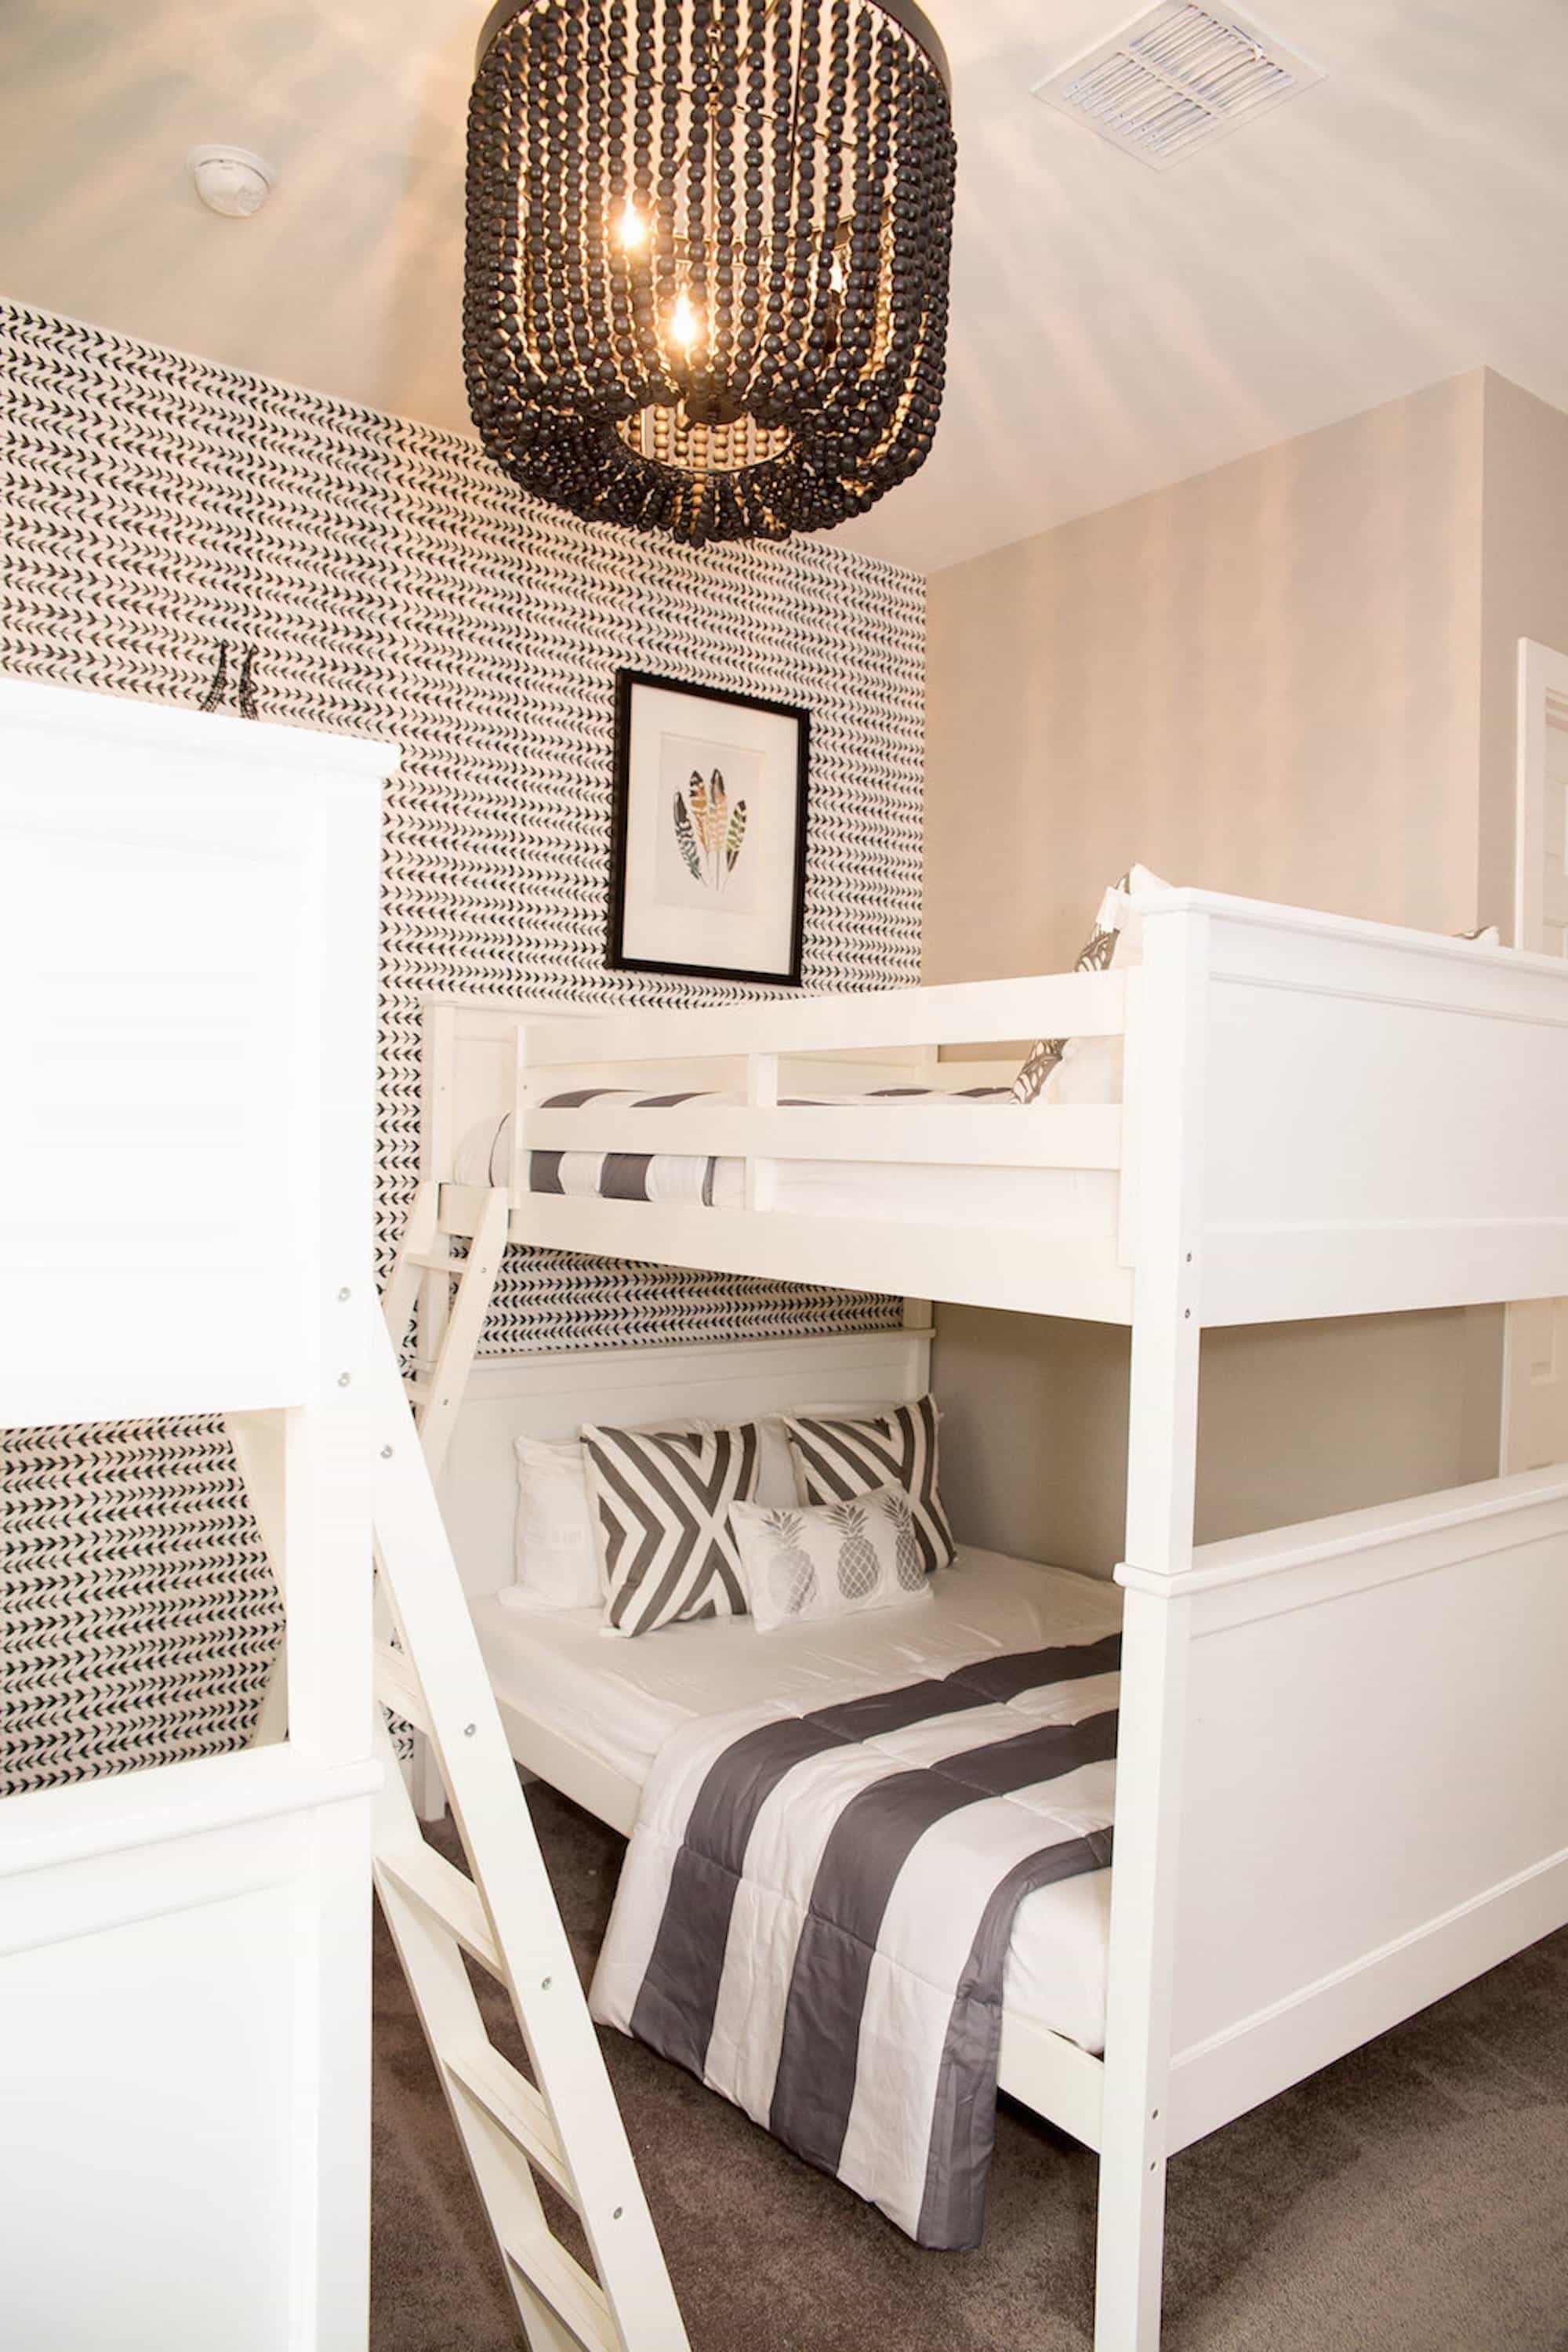 Contemporary Black And White Kids Bedroom With Bunk Bed And Small Print Graphic Wallpaper As A Backdrop (Image 11 of 27)